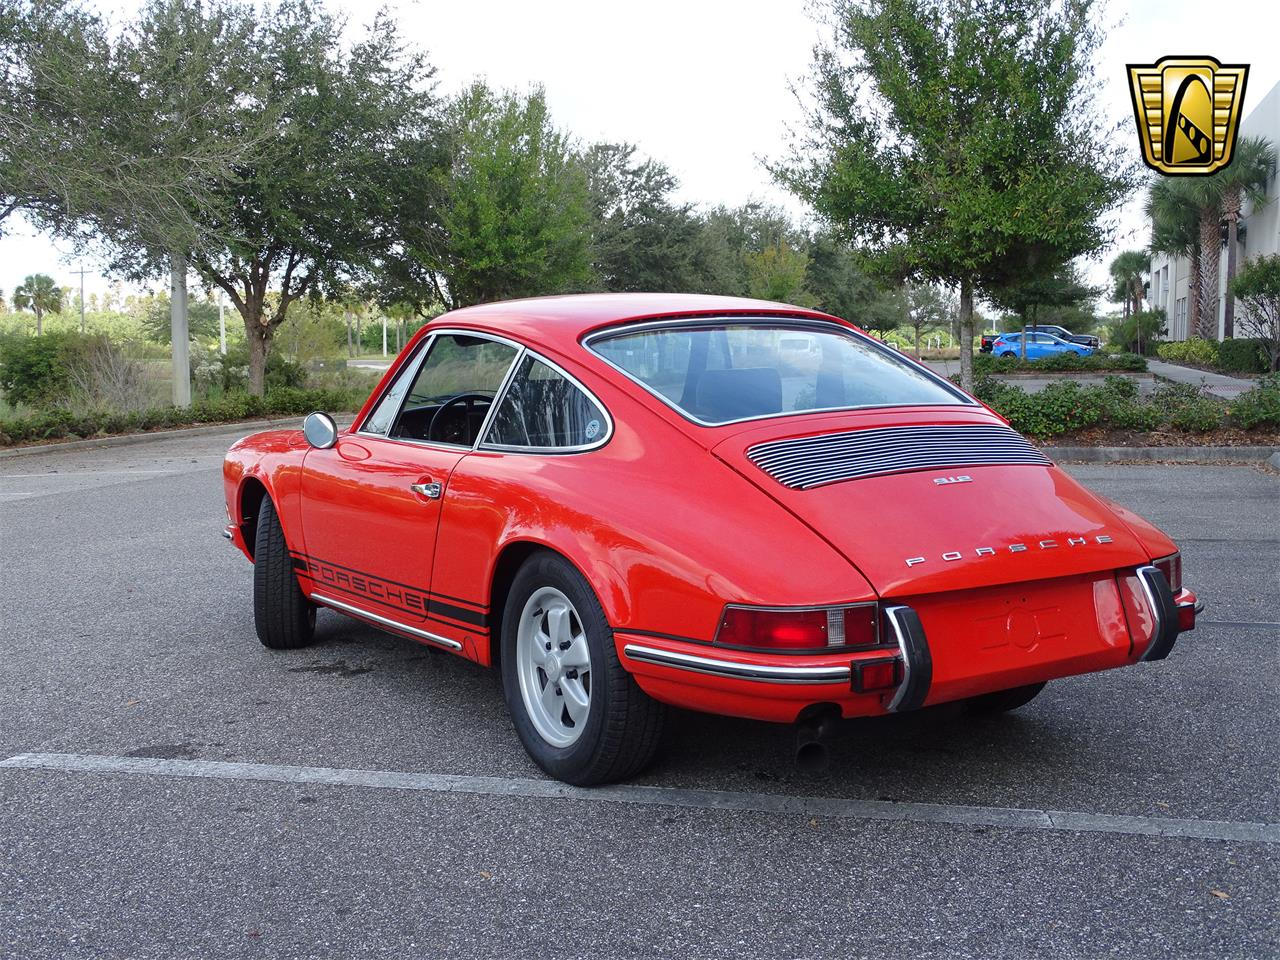 Large Picture of '69 Porsche 912 located in Florida - $45,995.00 Offered by Gateway Classic Cars - Tampa - KDX5